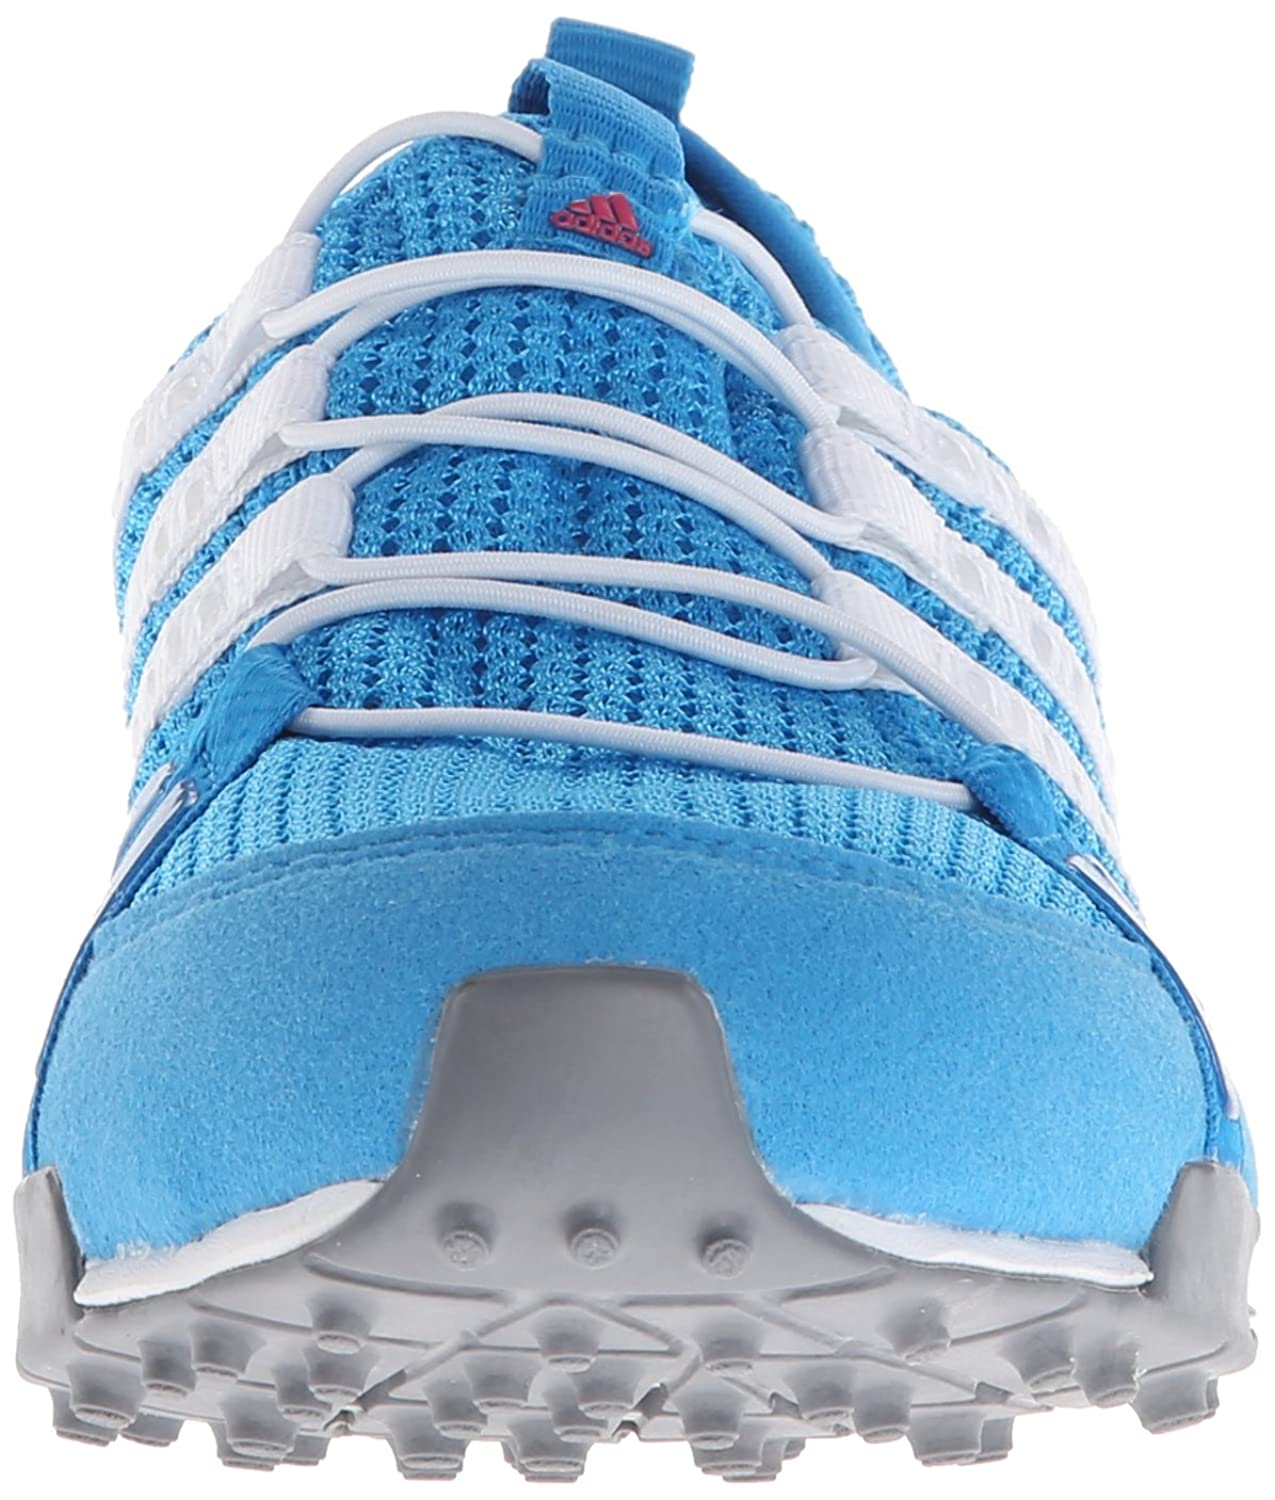 adidas women's climacool ballerina golf shoes